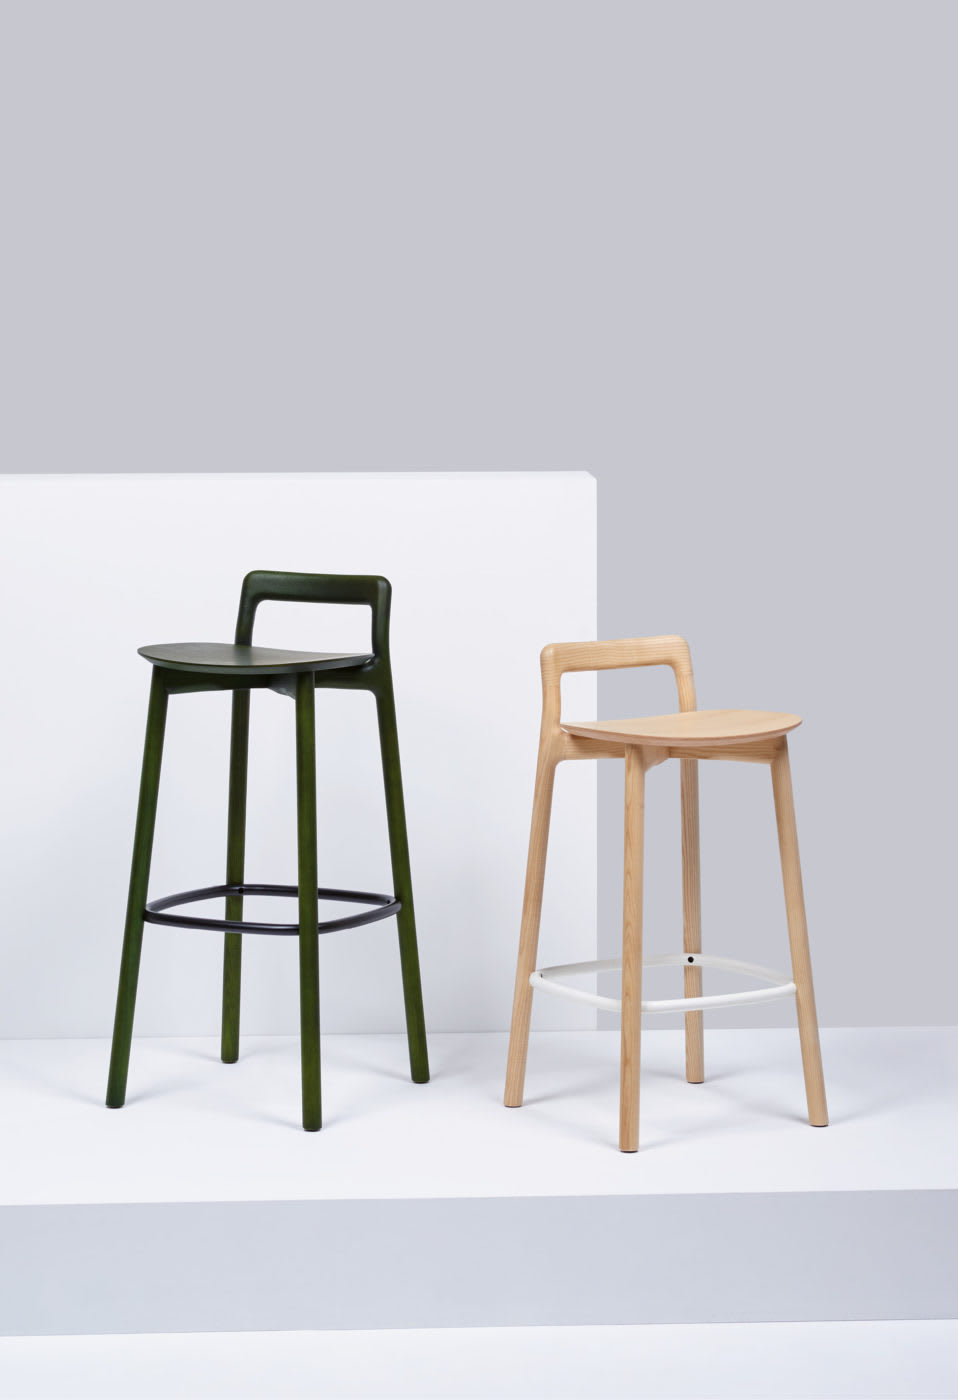 Chairs by Mattiazzi Italy seen at Rech by Alain Ducasse - Branca Stools